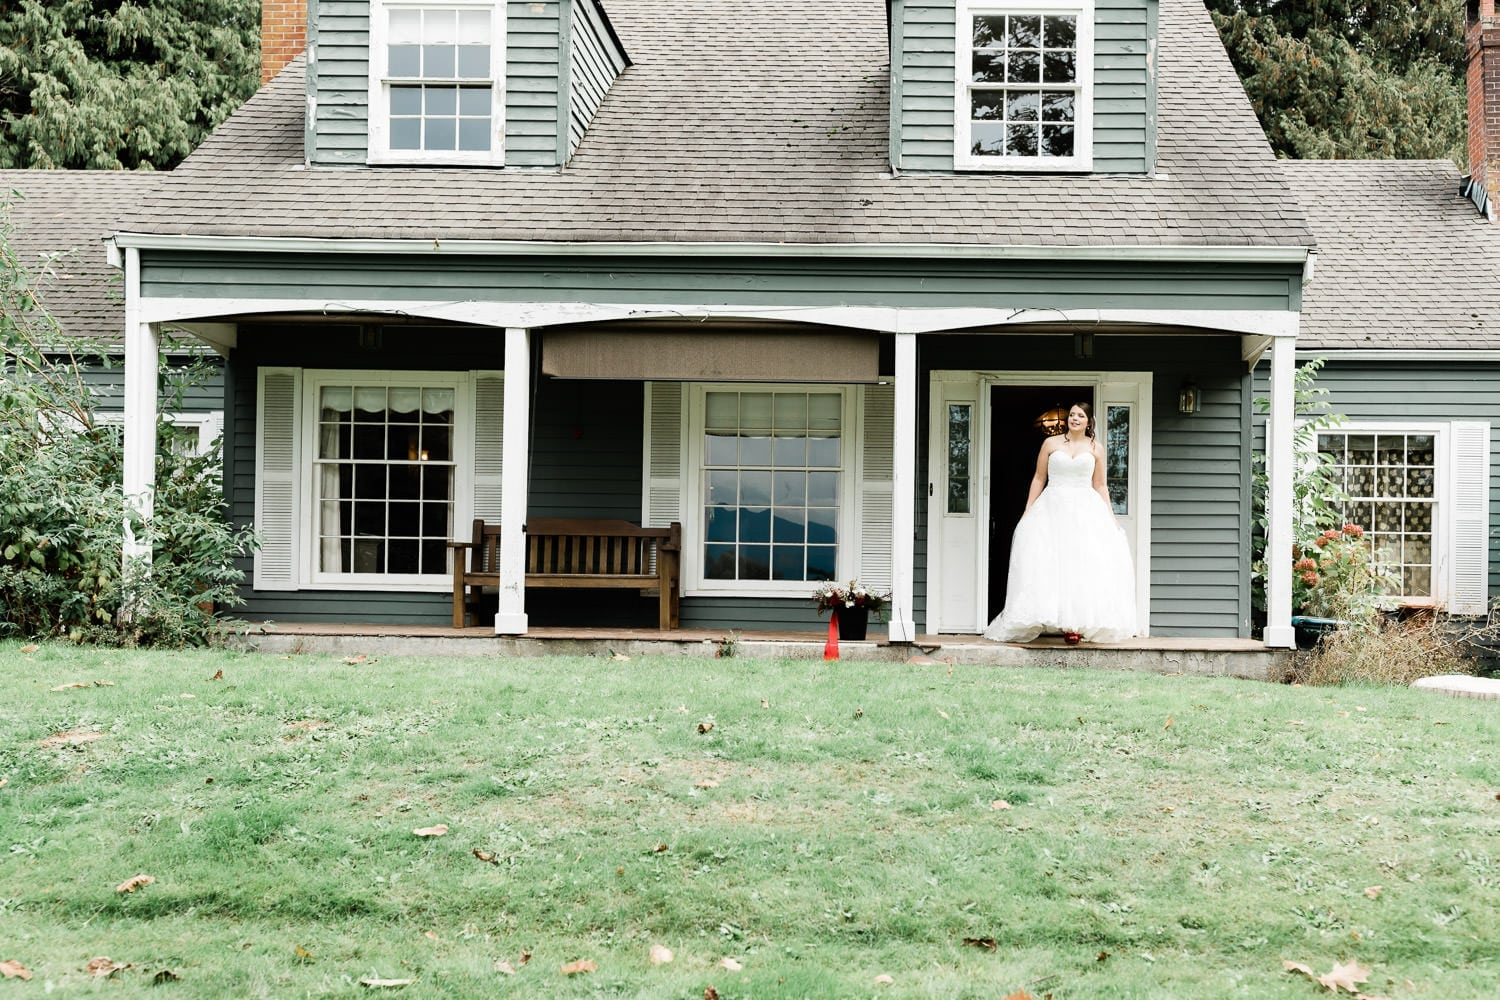 Bride posing on the porch | Vancouver wedding photographer